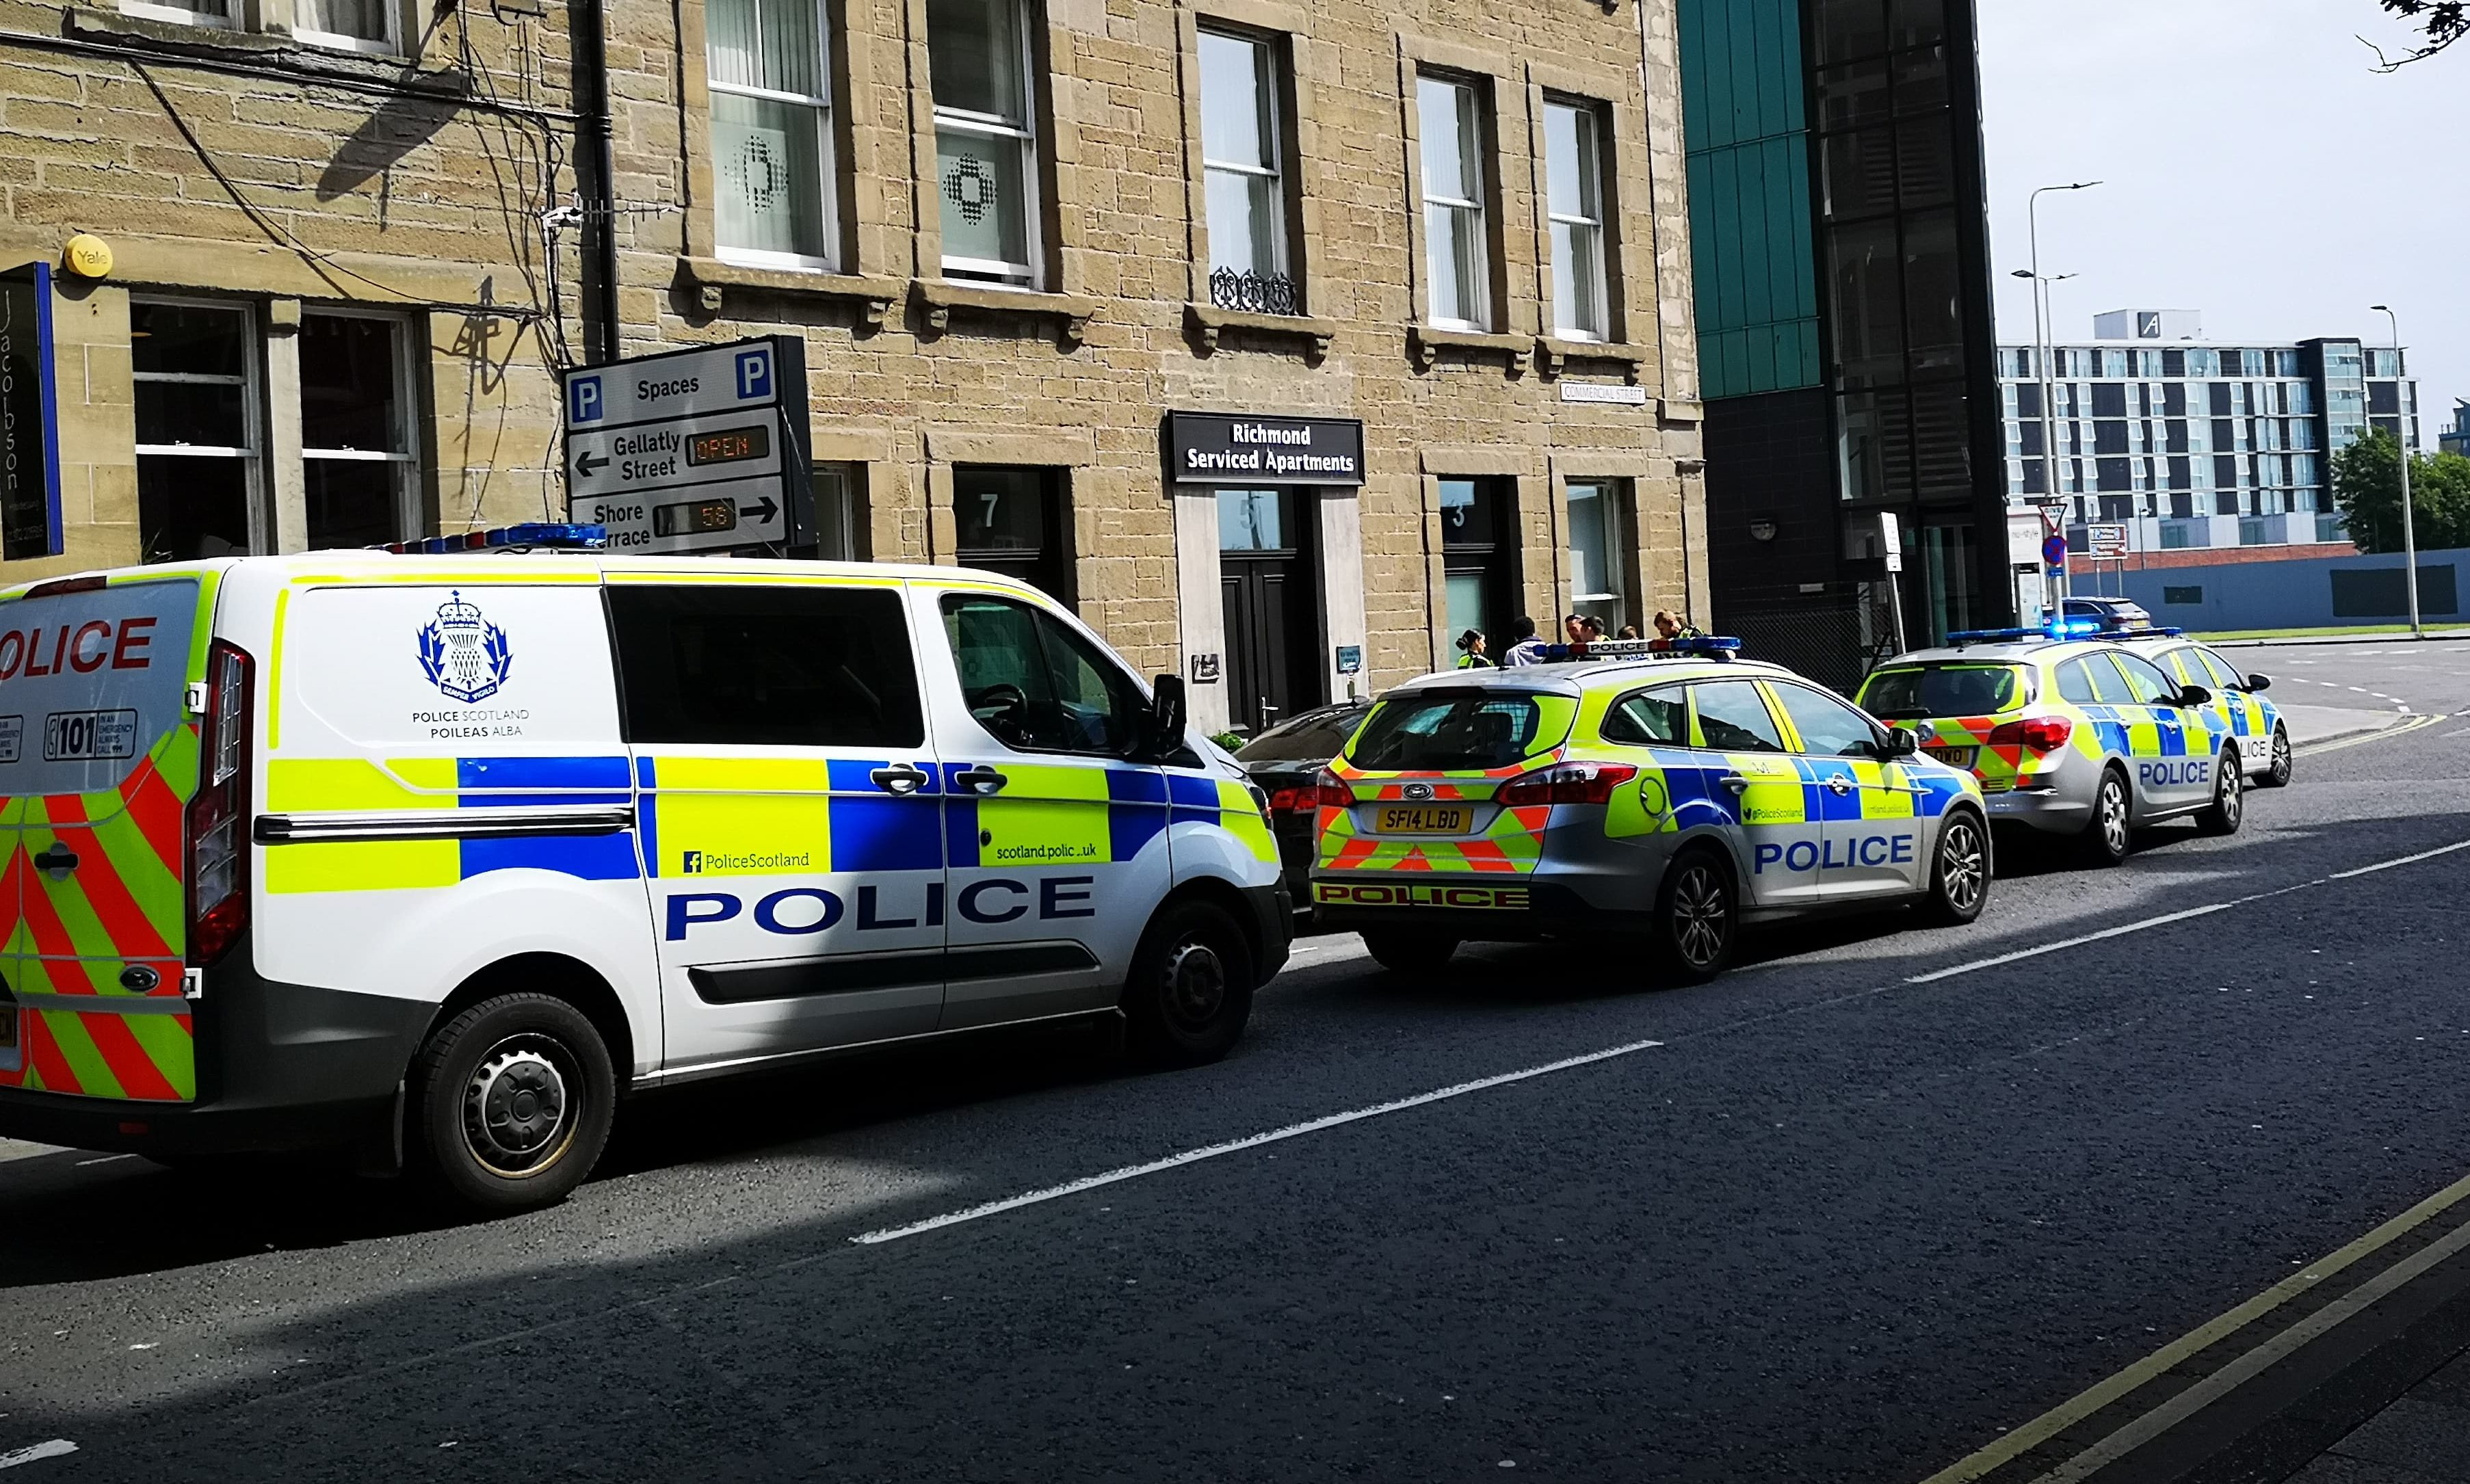 Police on Commercial Street.